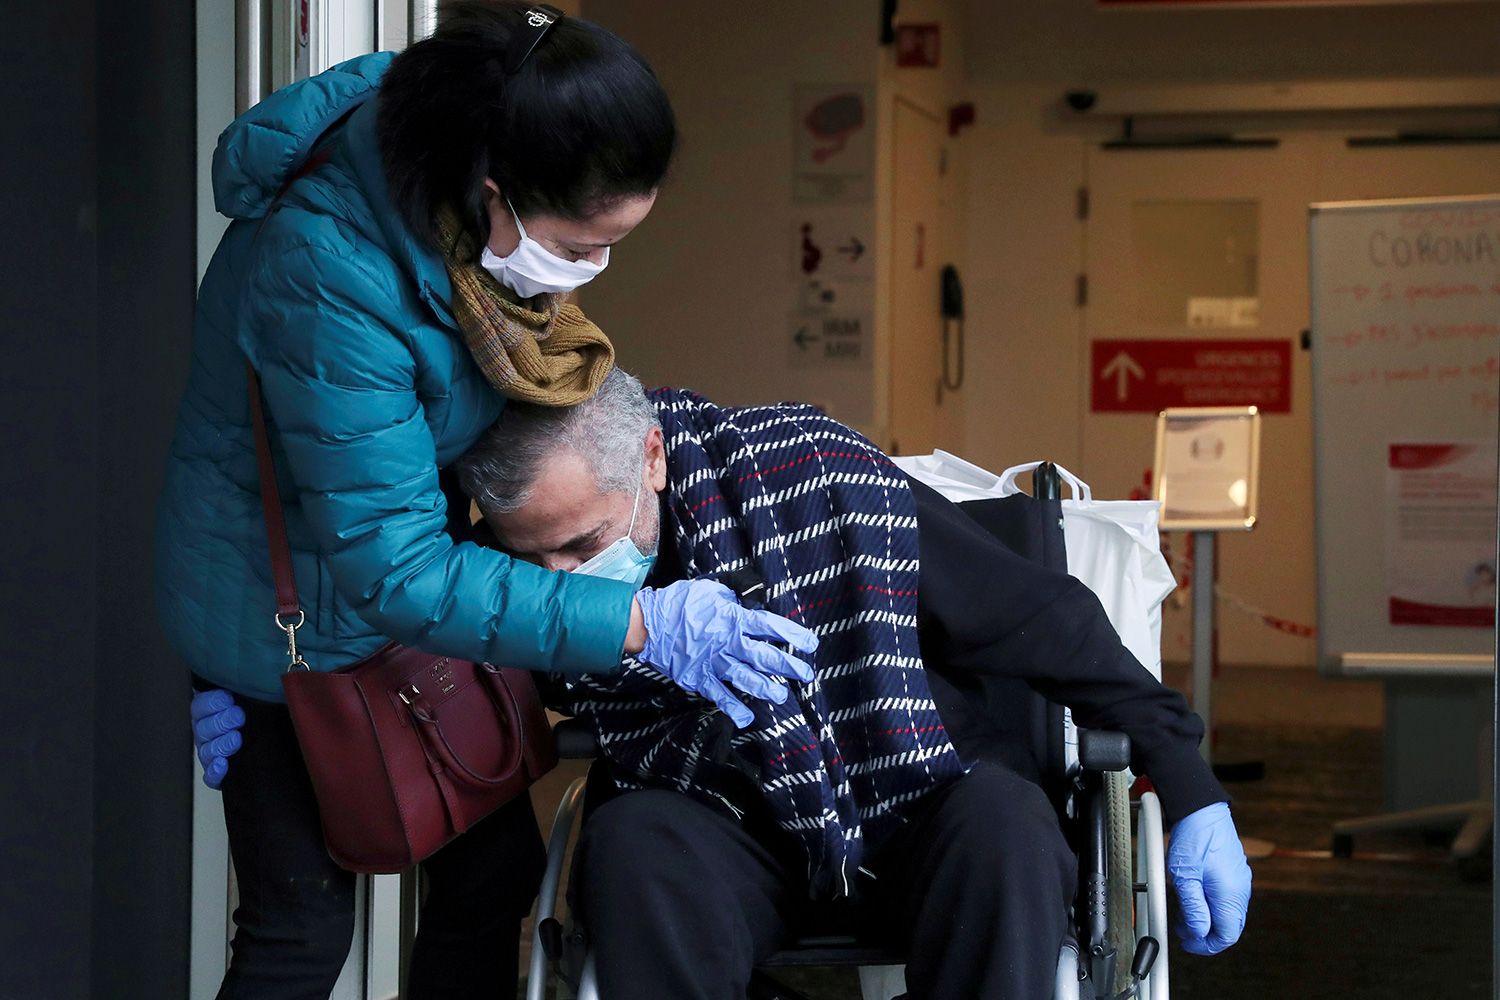 Image shows the doctor in a wheelchair hugging at his wife's torso as she leans into him. They are both wearing masks and gloves.